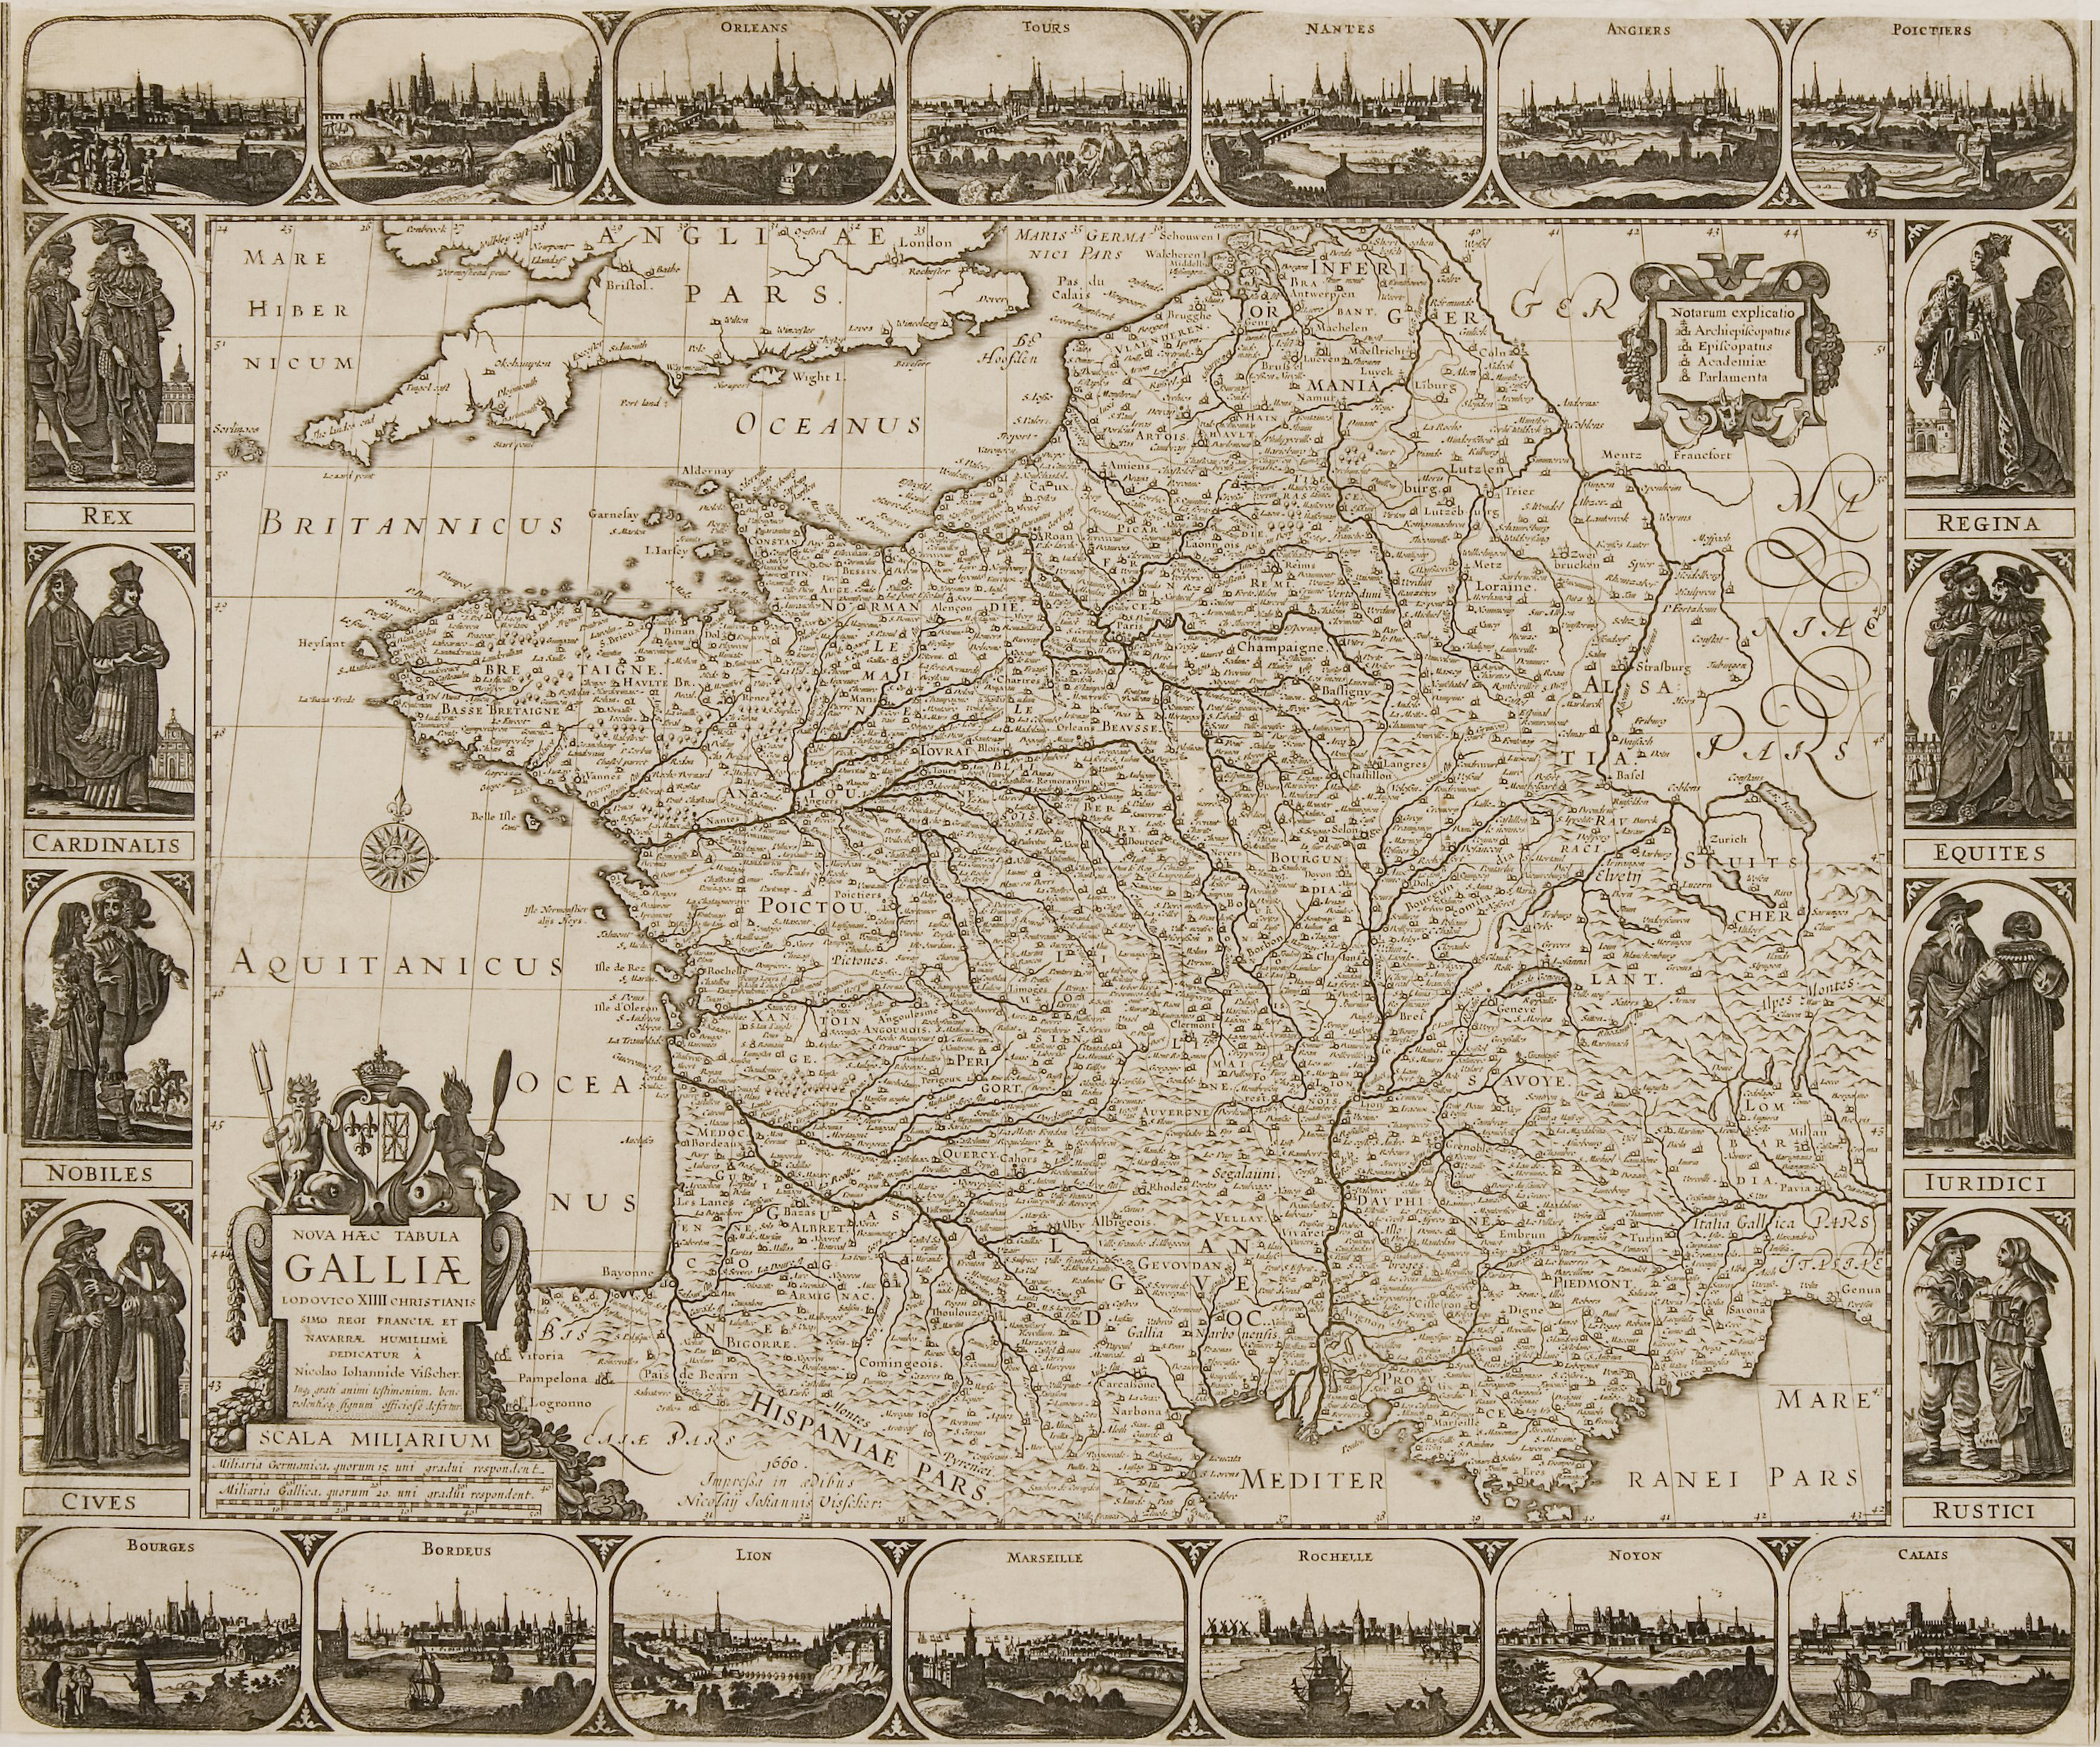 File:France par Visscher 1660.jpg